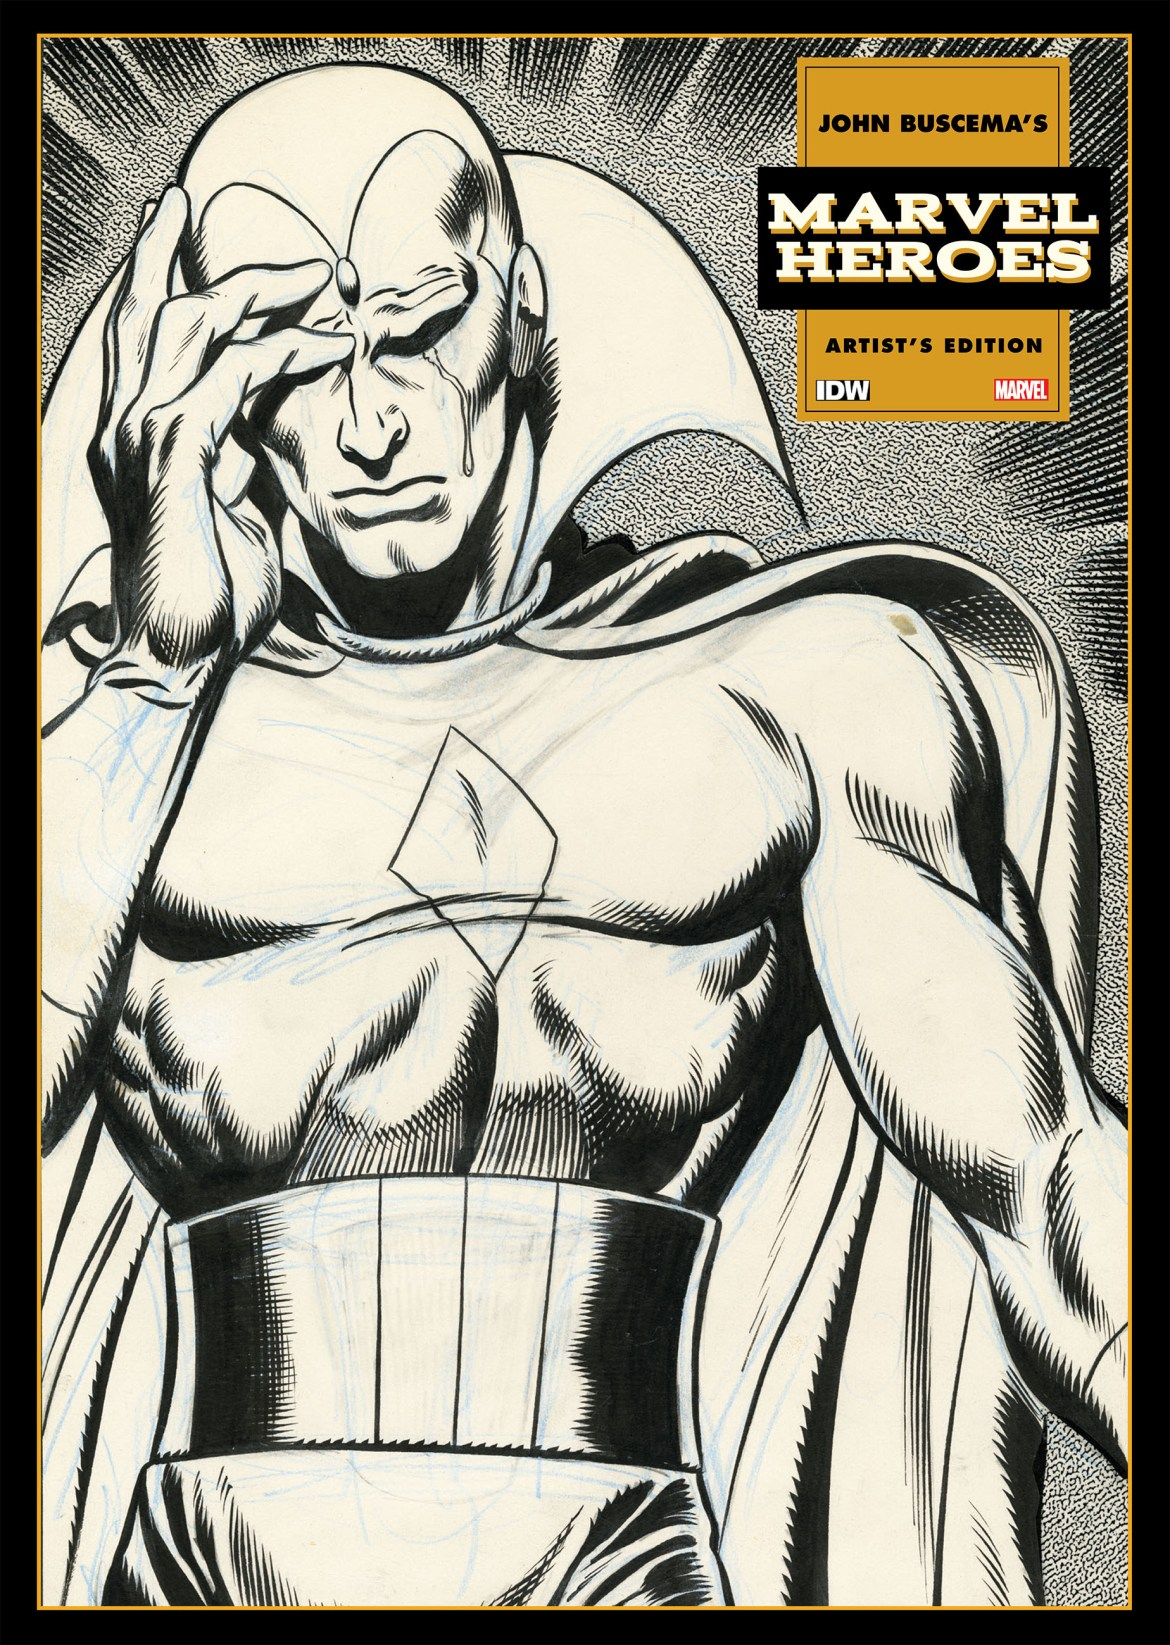 Buscema-Marvel-Heroes-cover-Final-converted-copy IDW Publishing June 2021 Solicitations